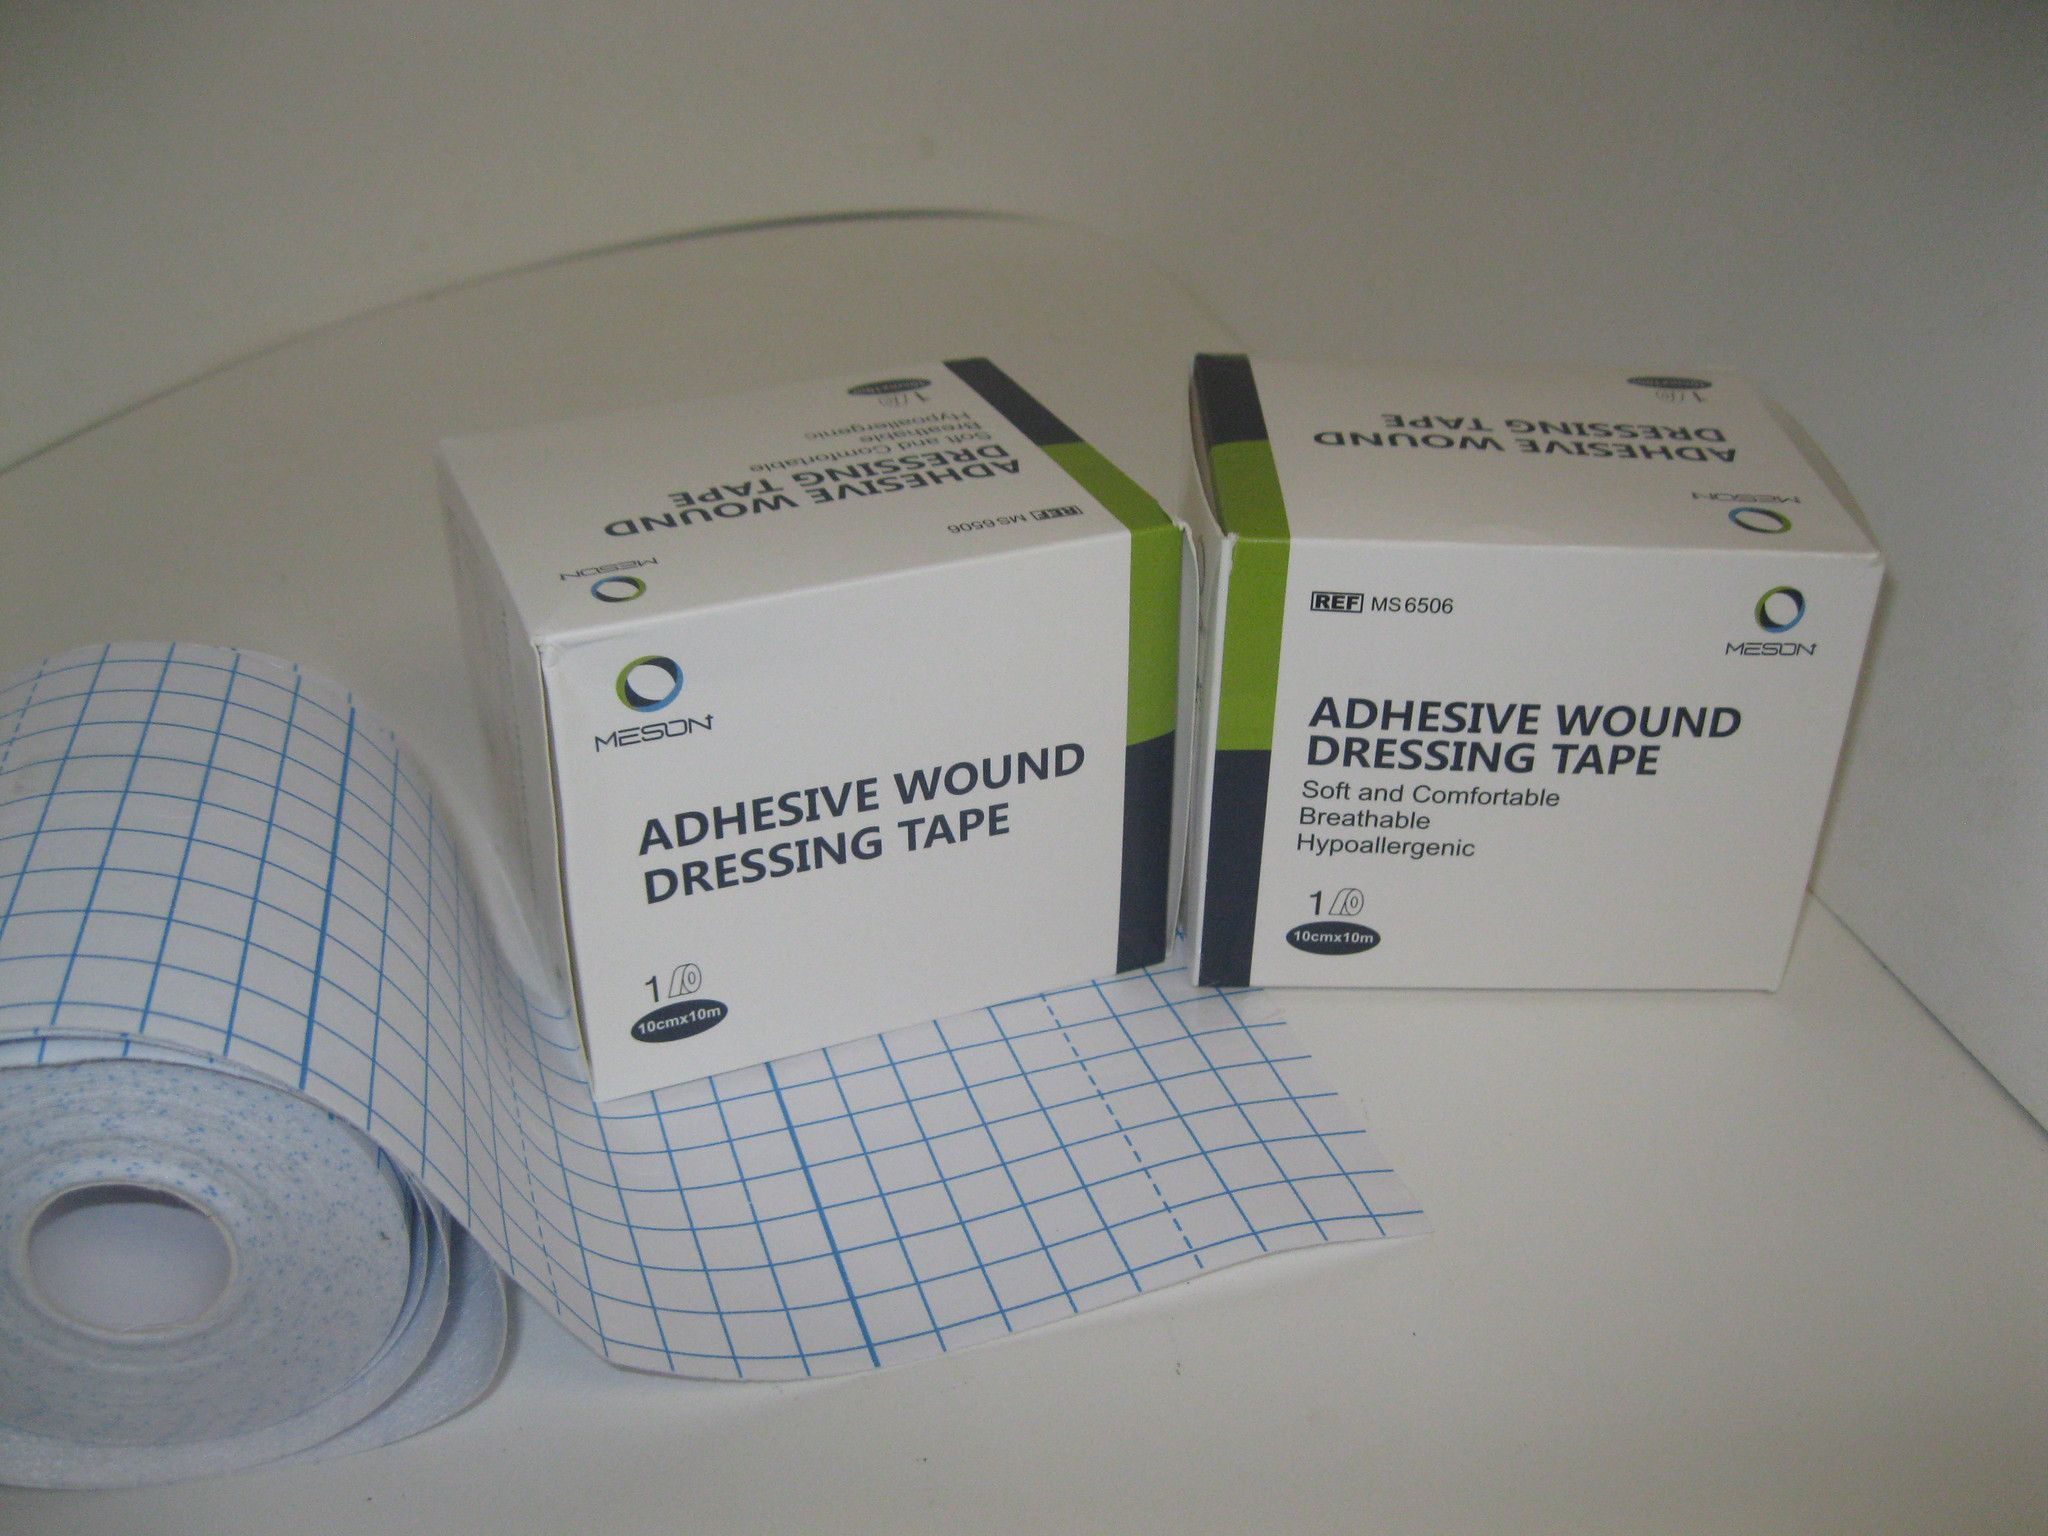 2 Rolls (boxes) of Meson dressing retention tape....fabric, cloth tape, 267